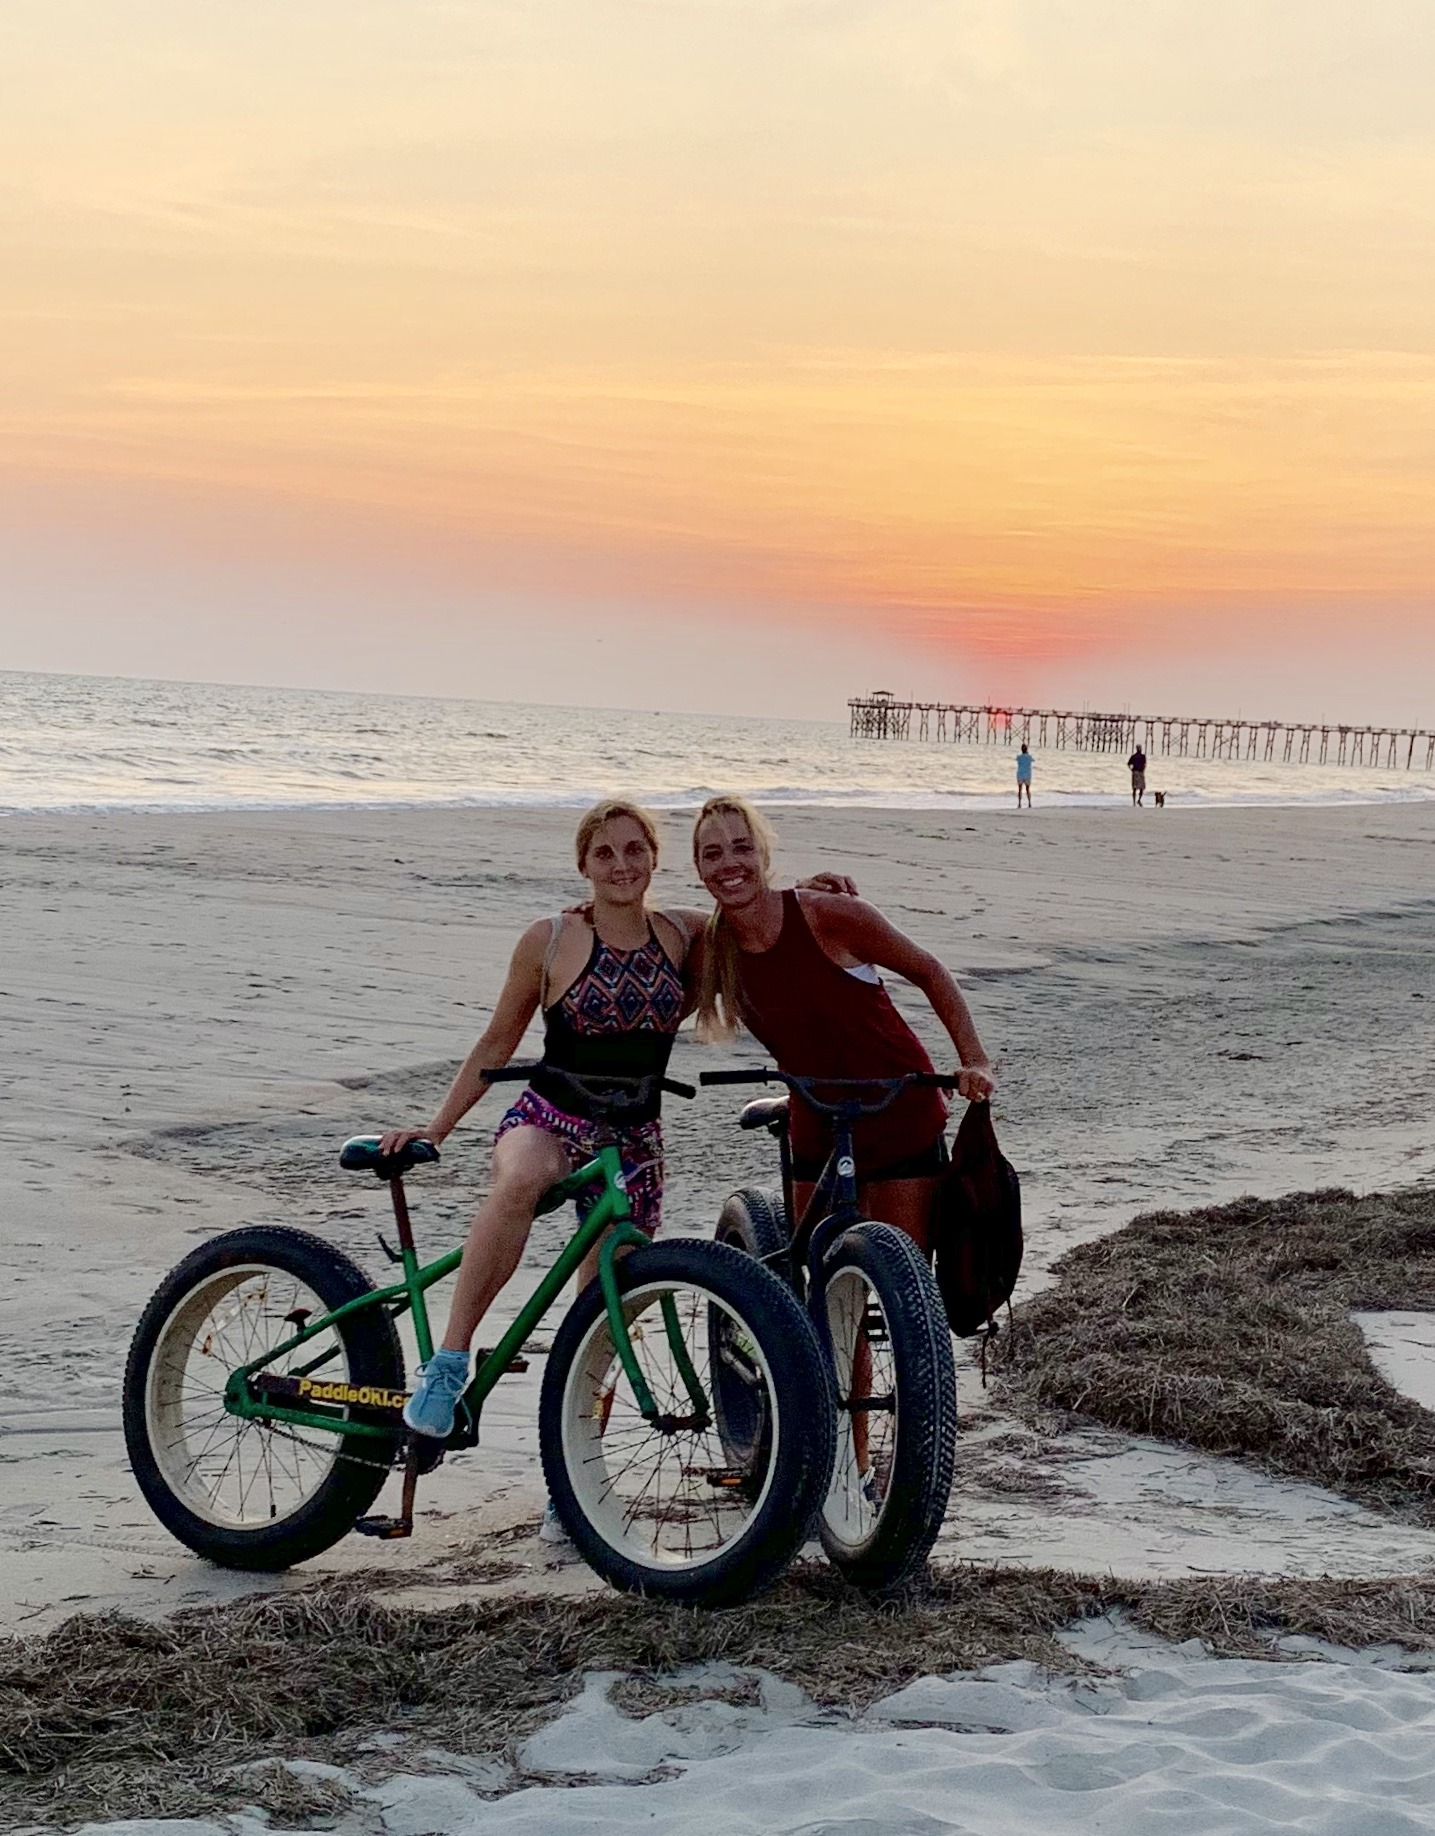 Bike on the Beach - Activity is not Exercise